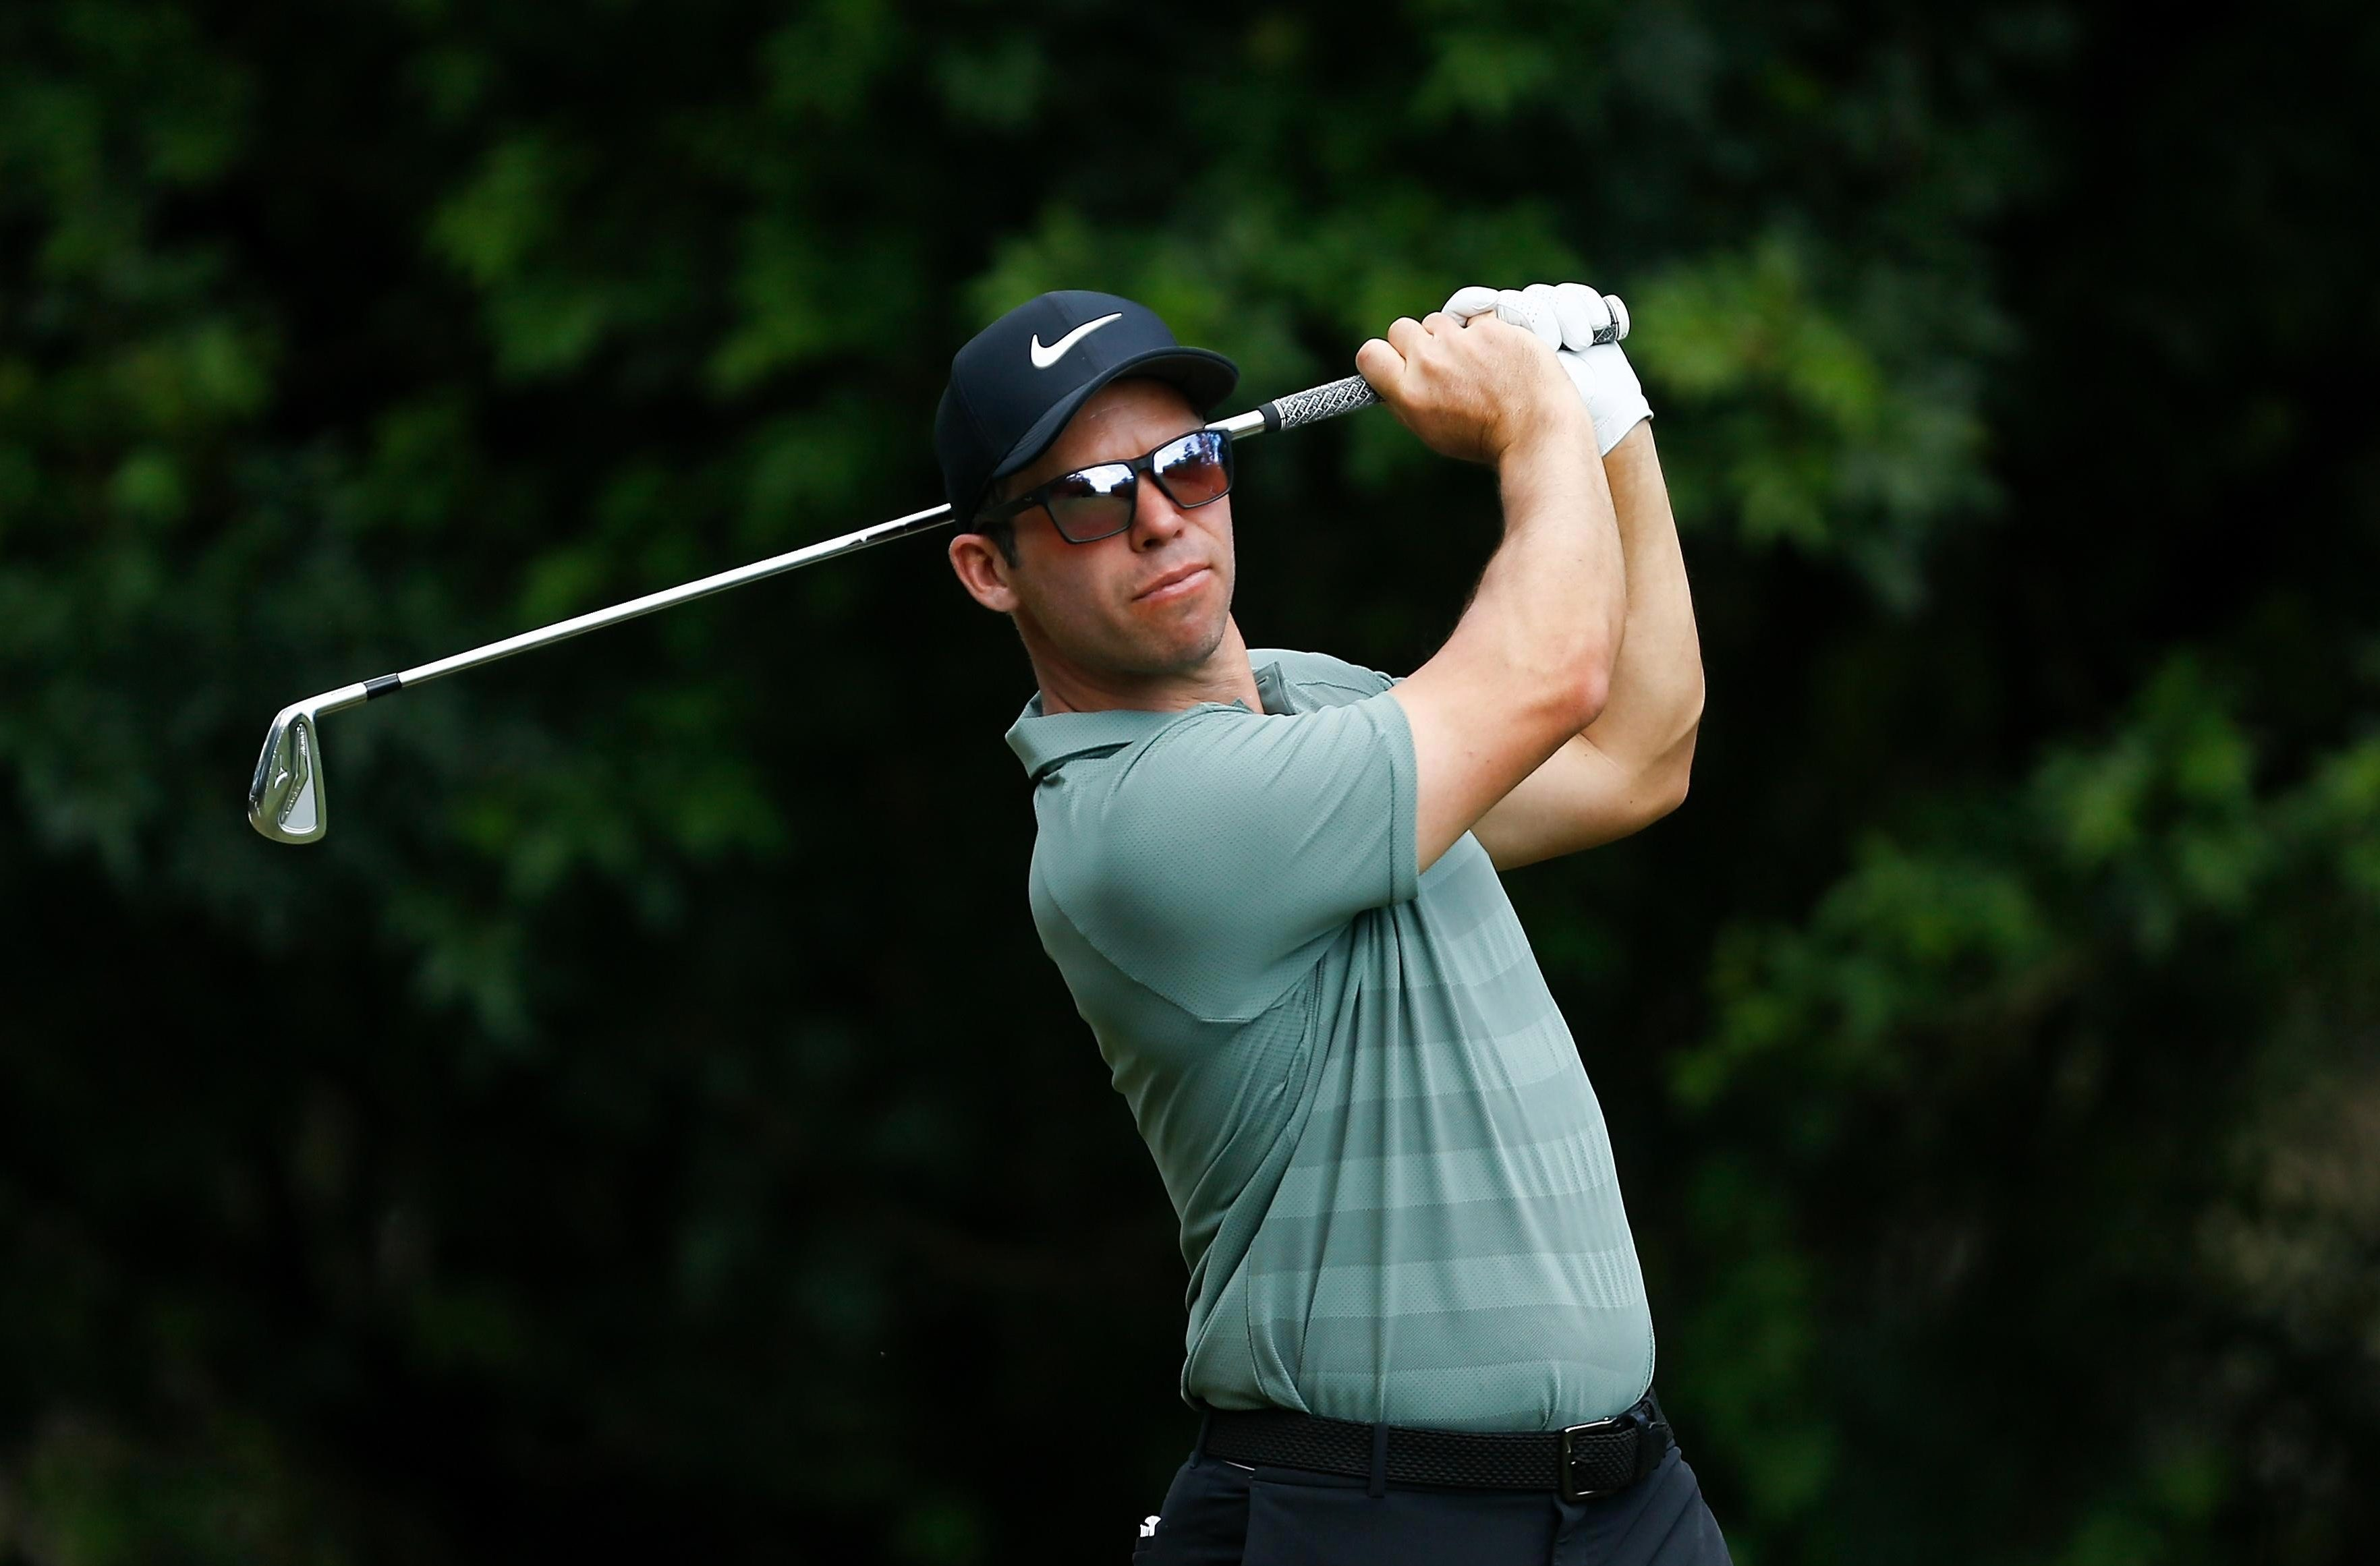 Paul Casey won the title after an anxious wait in the clubhouse